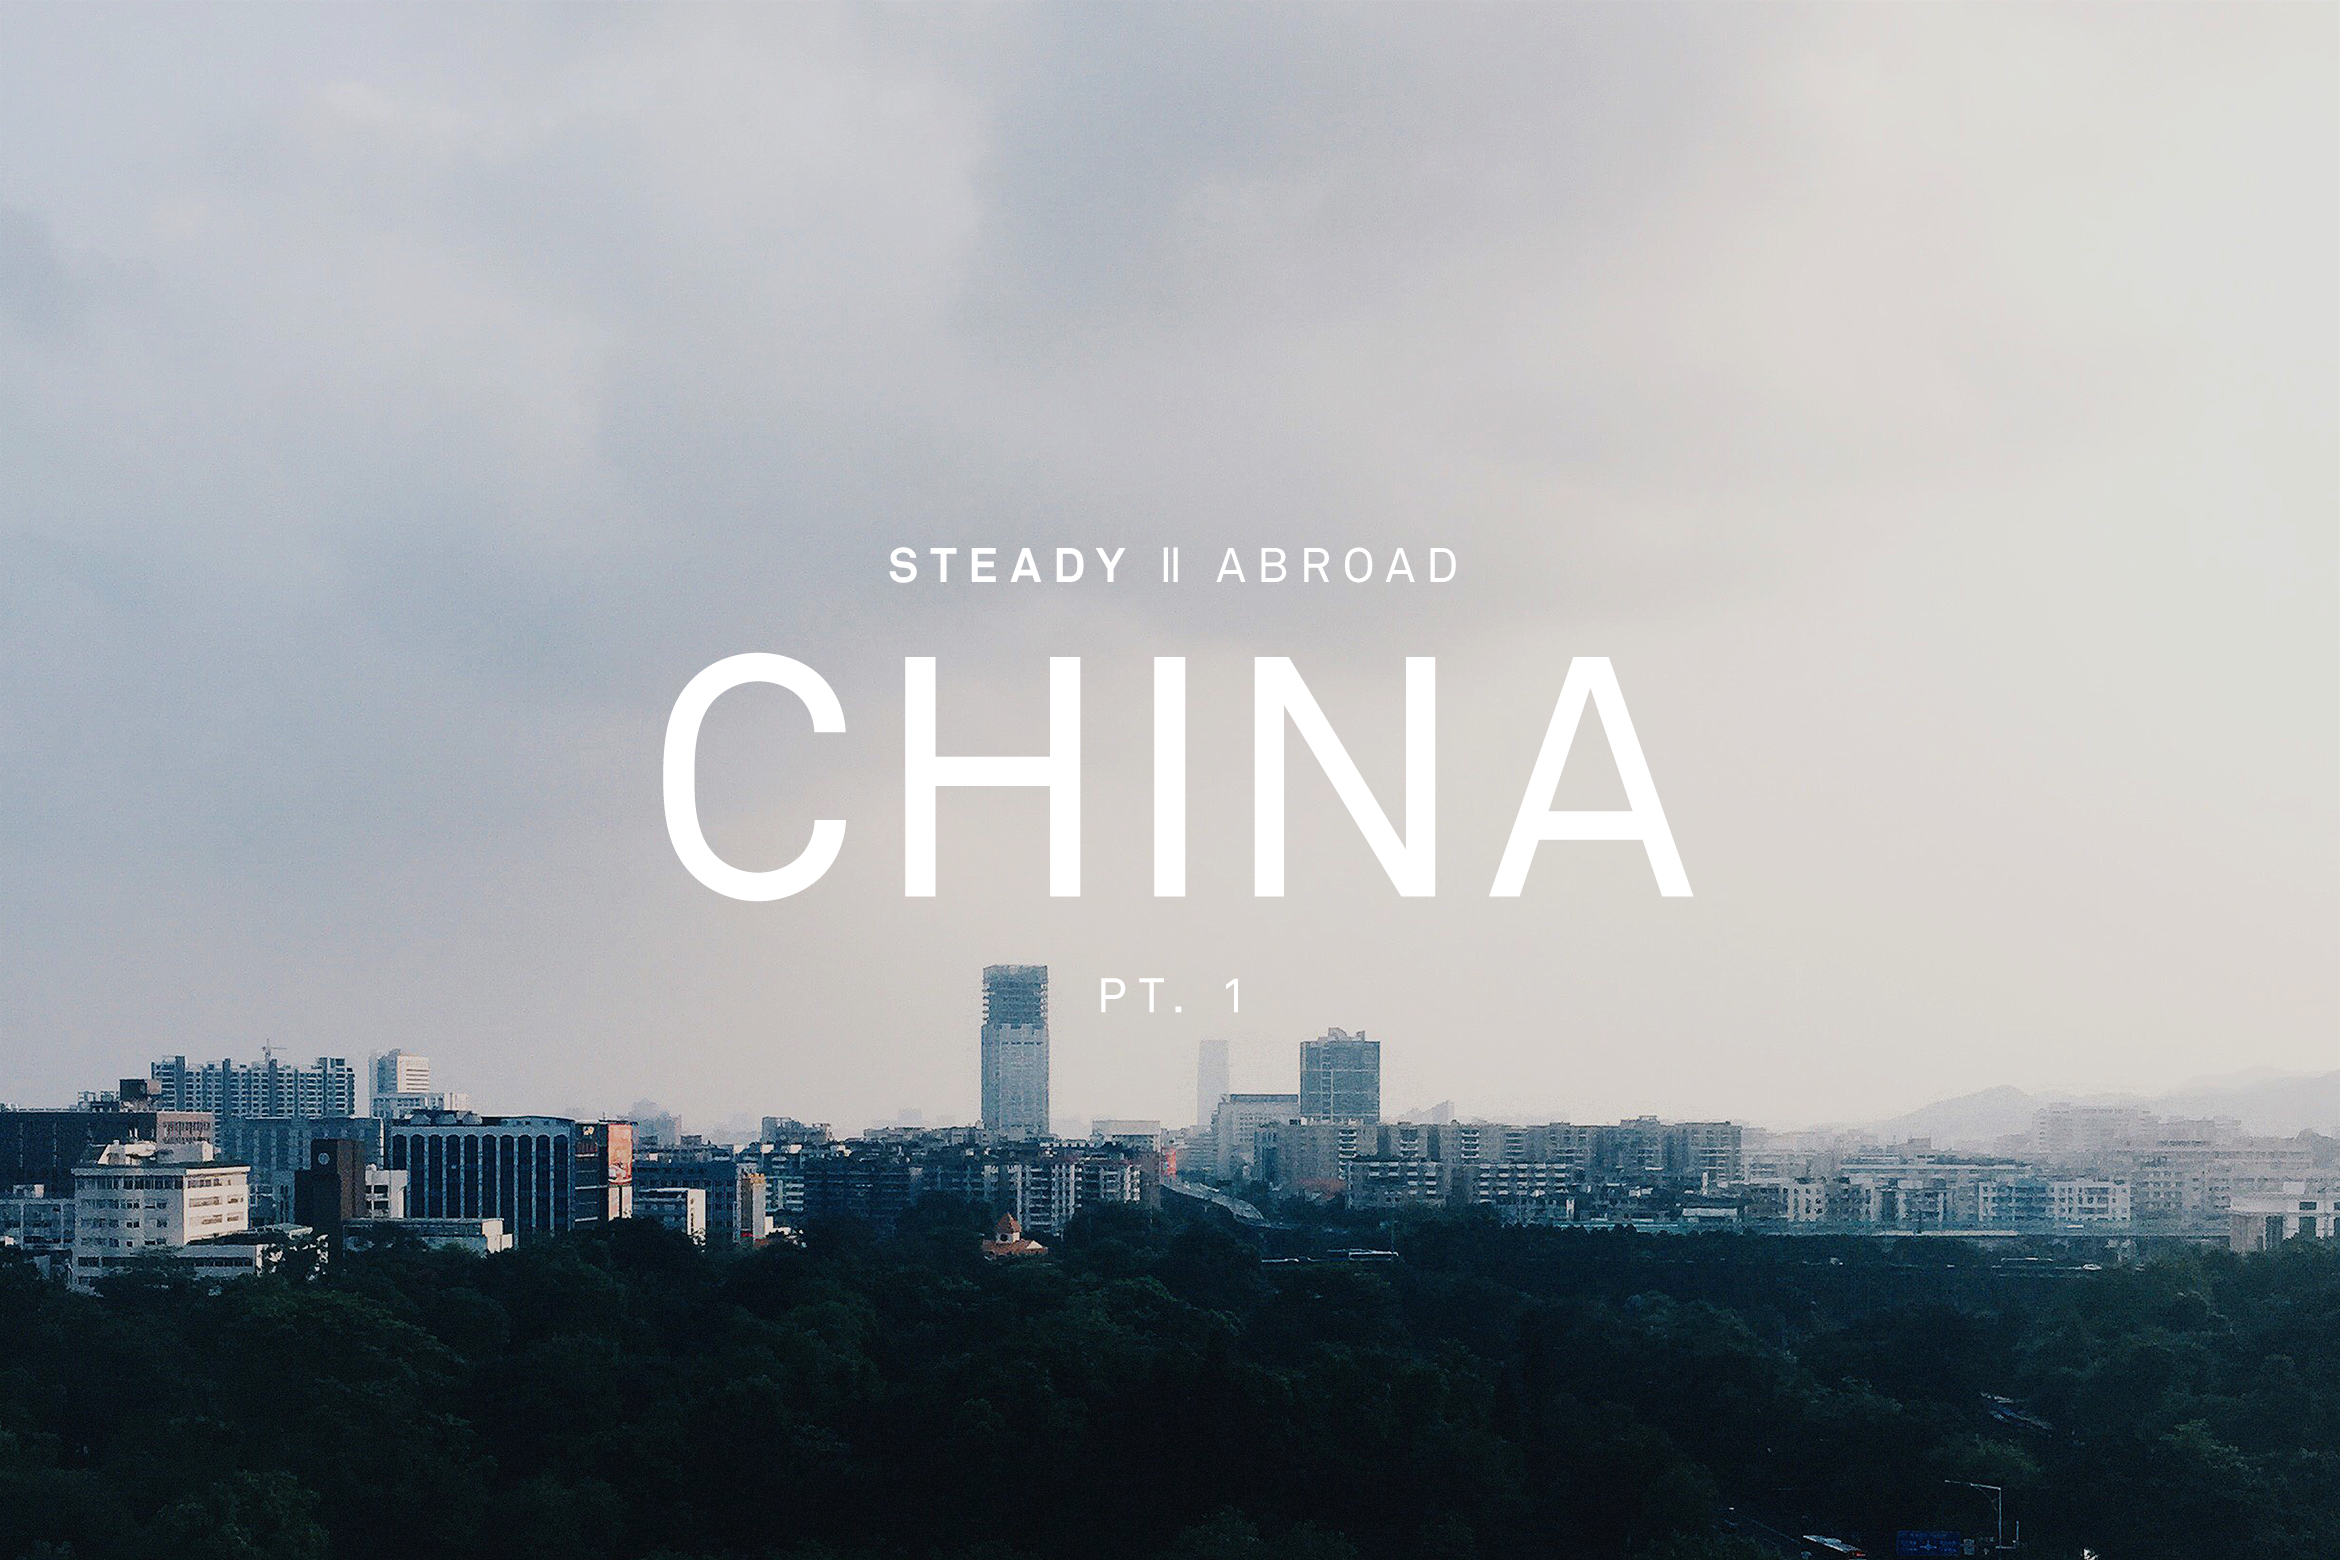 STEADY ABROAD: CHINA PT.1